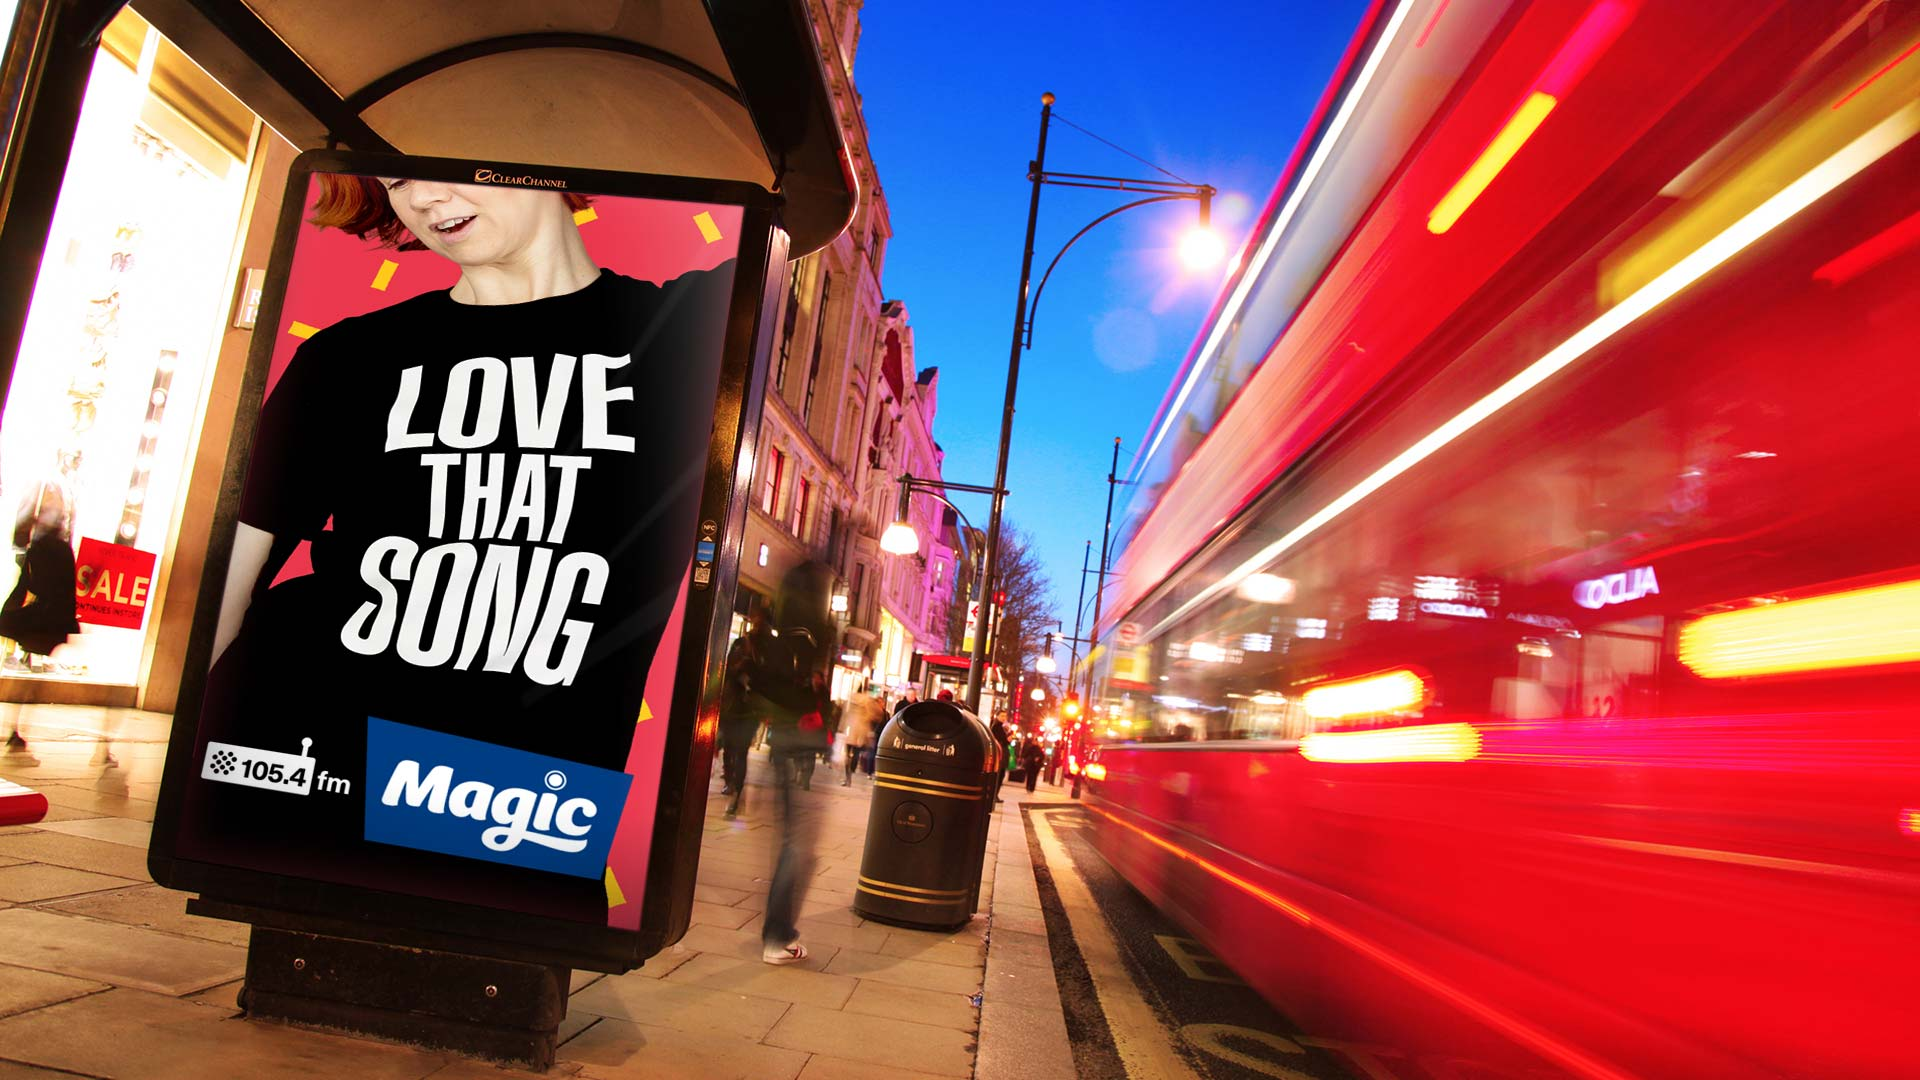 Magic radio national advertising